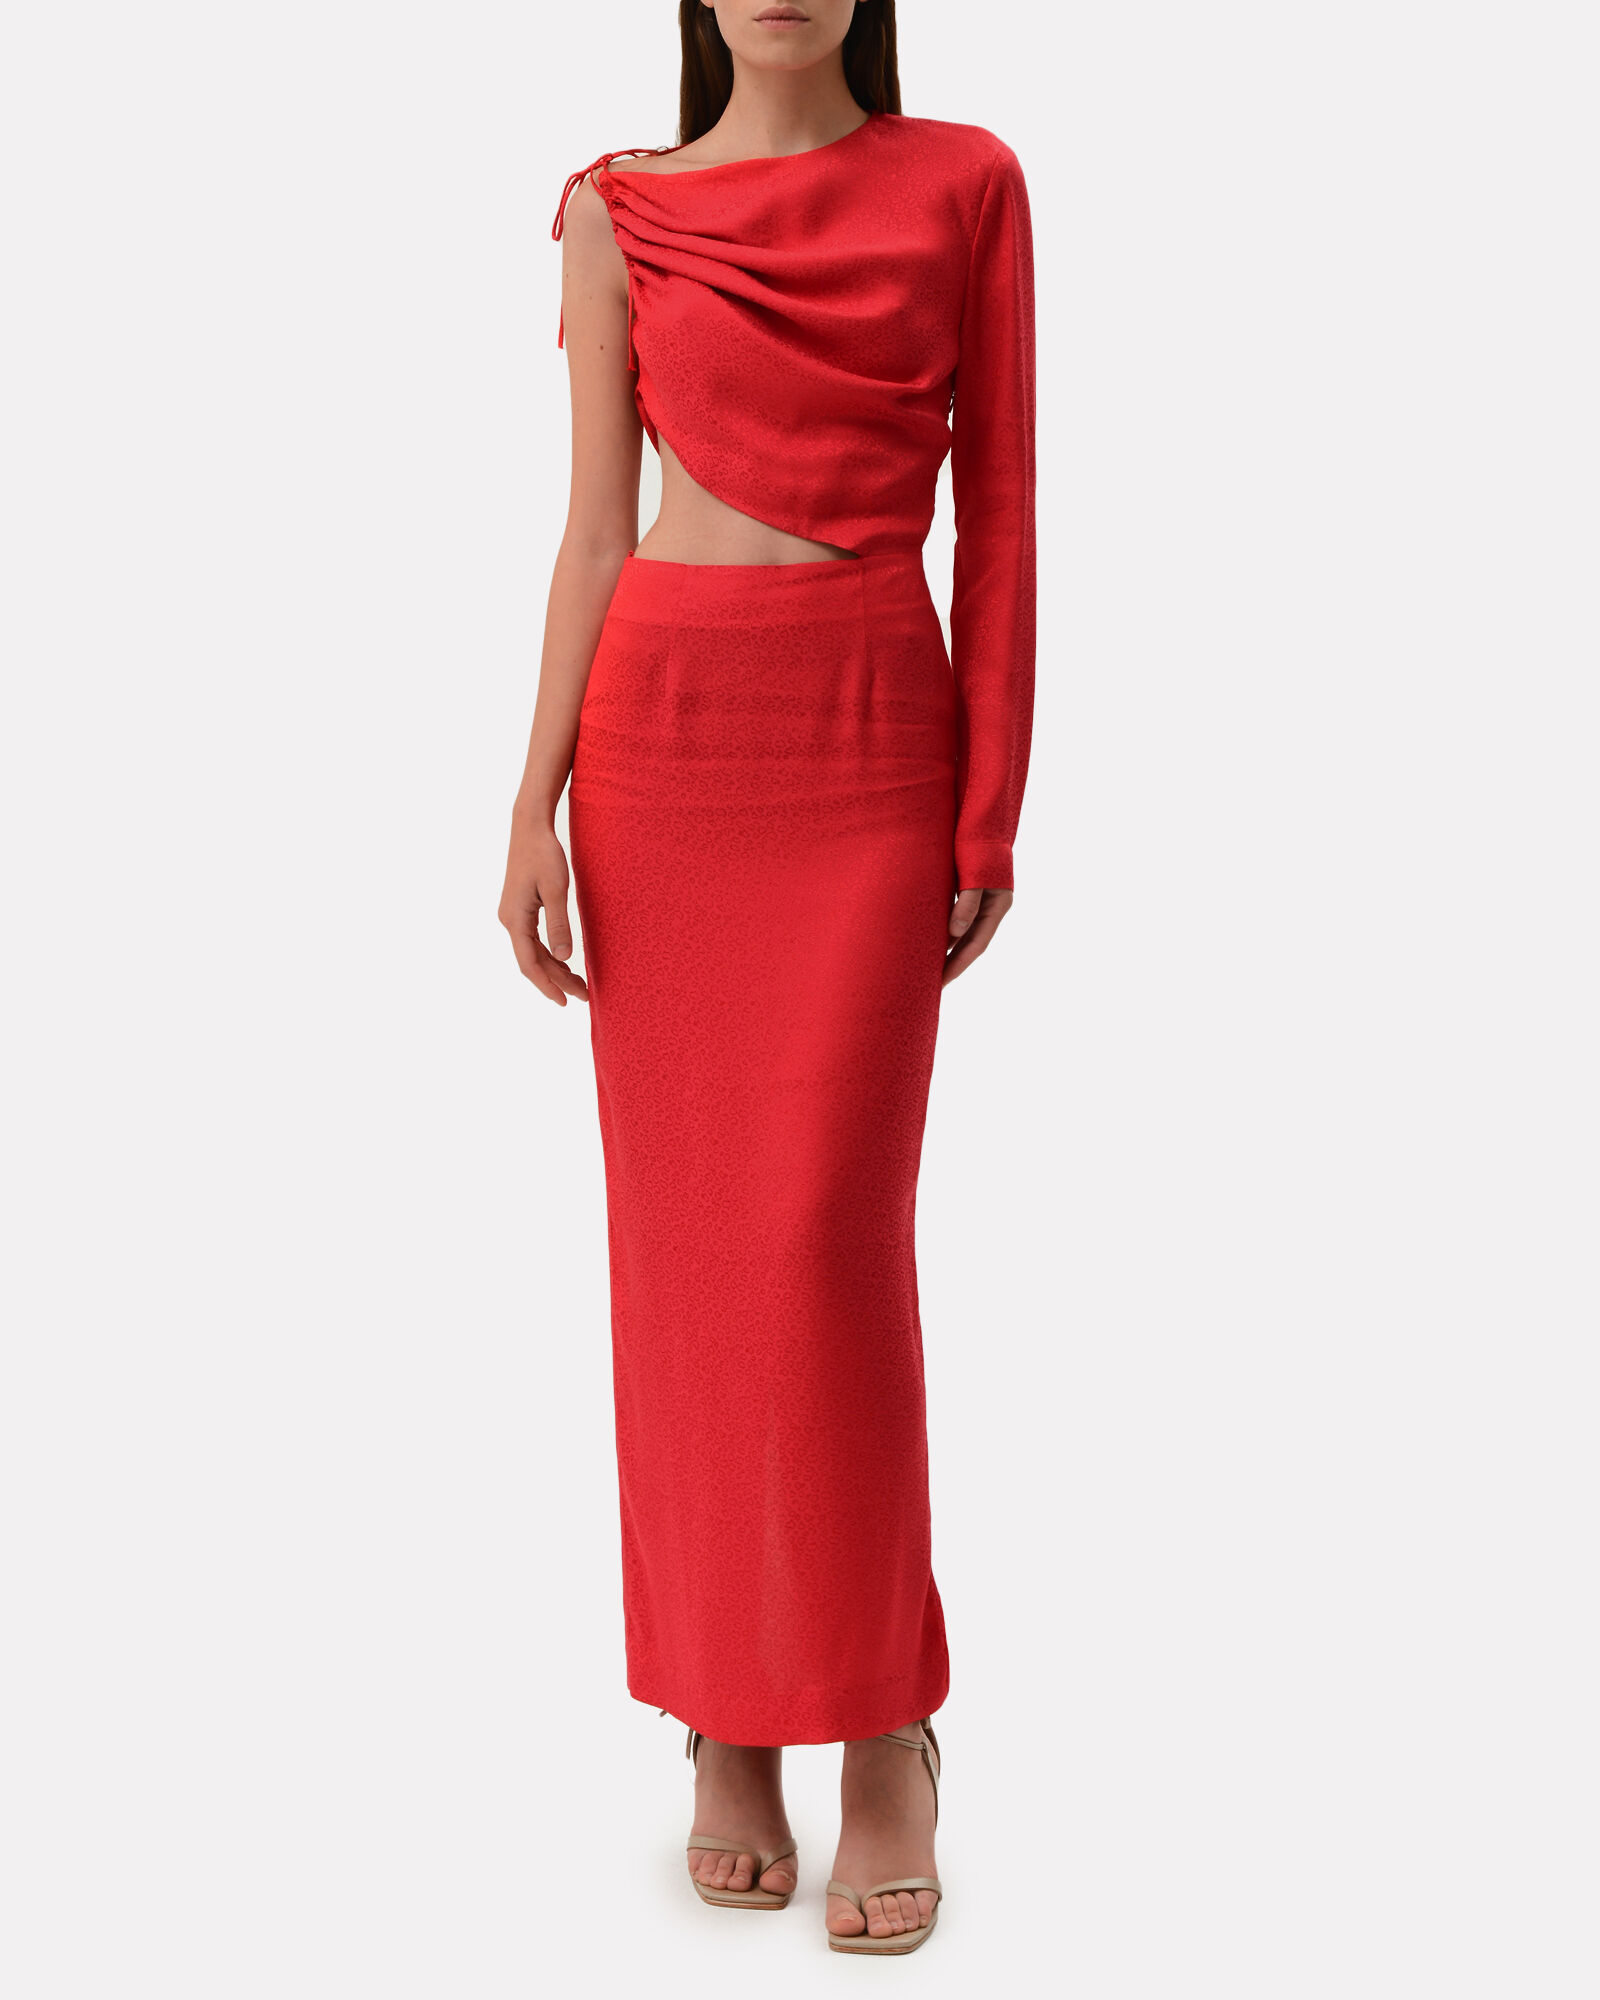 Leo Cut-Out Satin Jacquard Dress, RED, hi-res